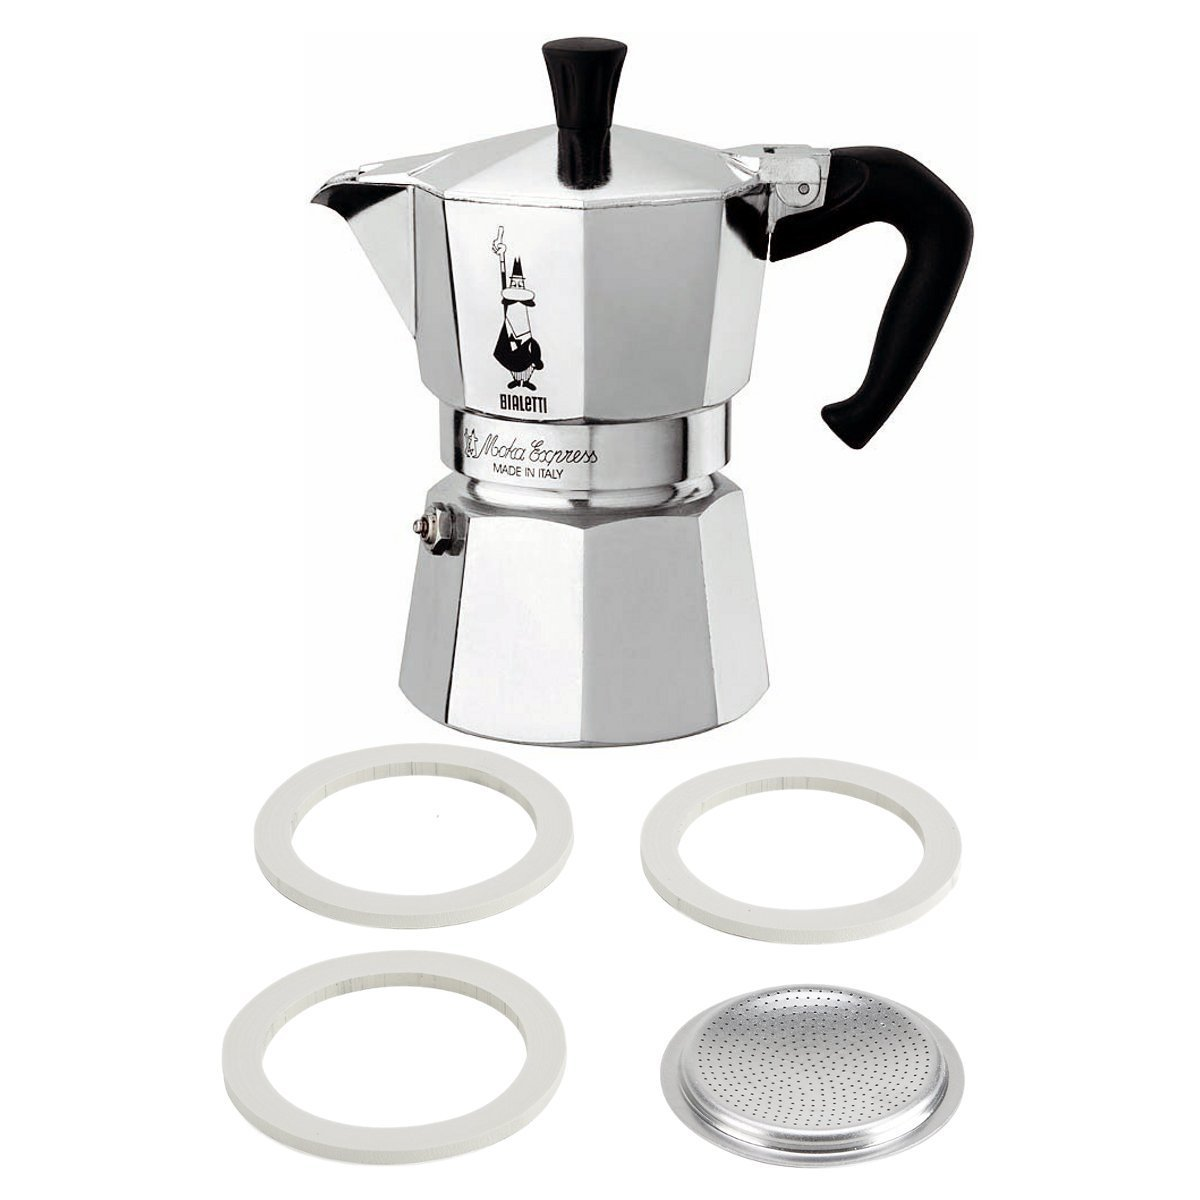 Bialetti Moka Express Aluminum 9 Cup Stove-top Espresso Maker with Replacement Filter and Gaskets by Bialetti